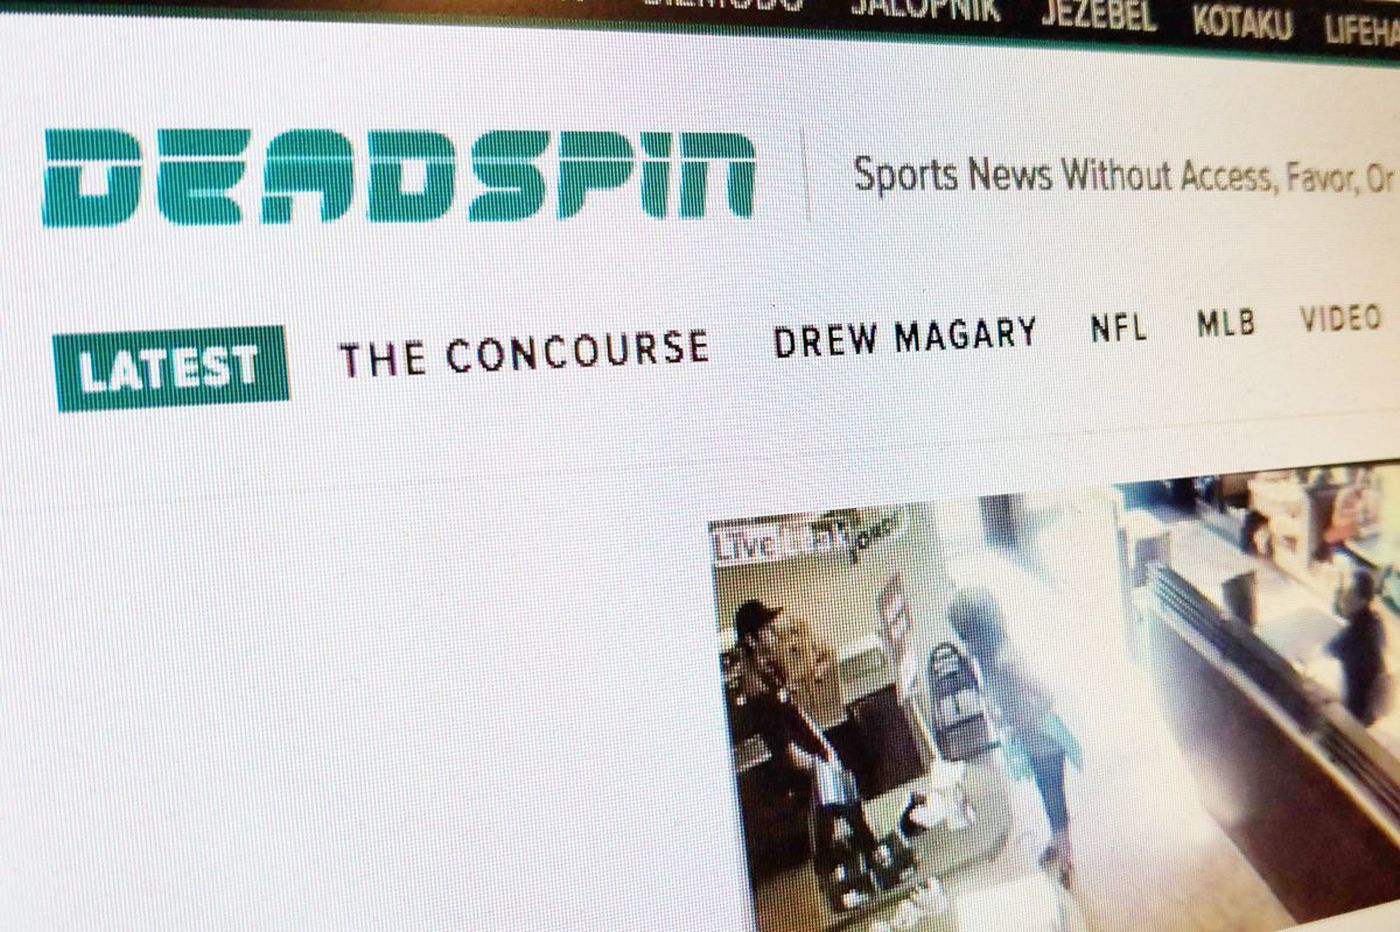 Deadspin editor, Temple alum Barry Petchesky fired for 'not sticking to sports'